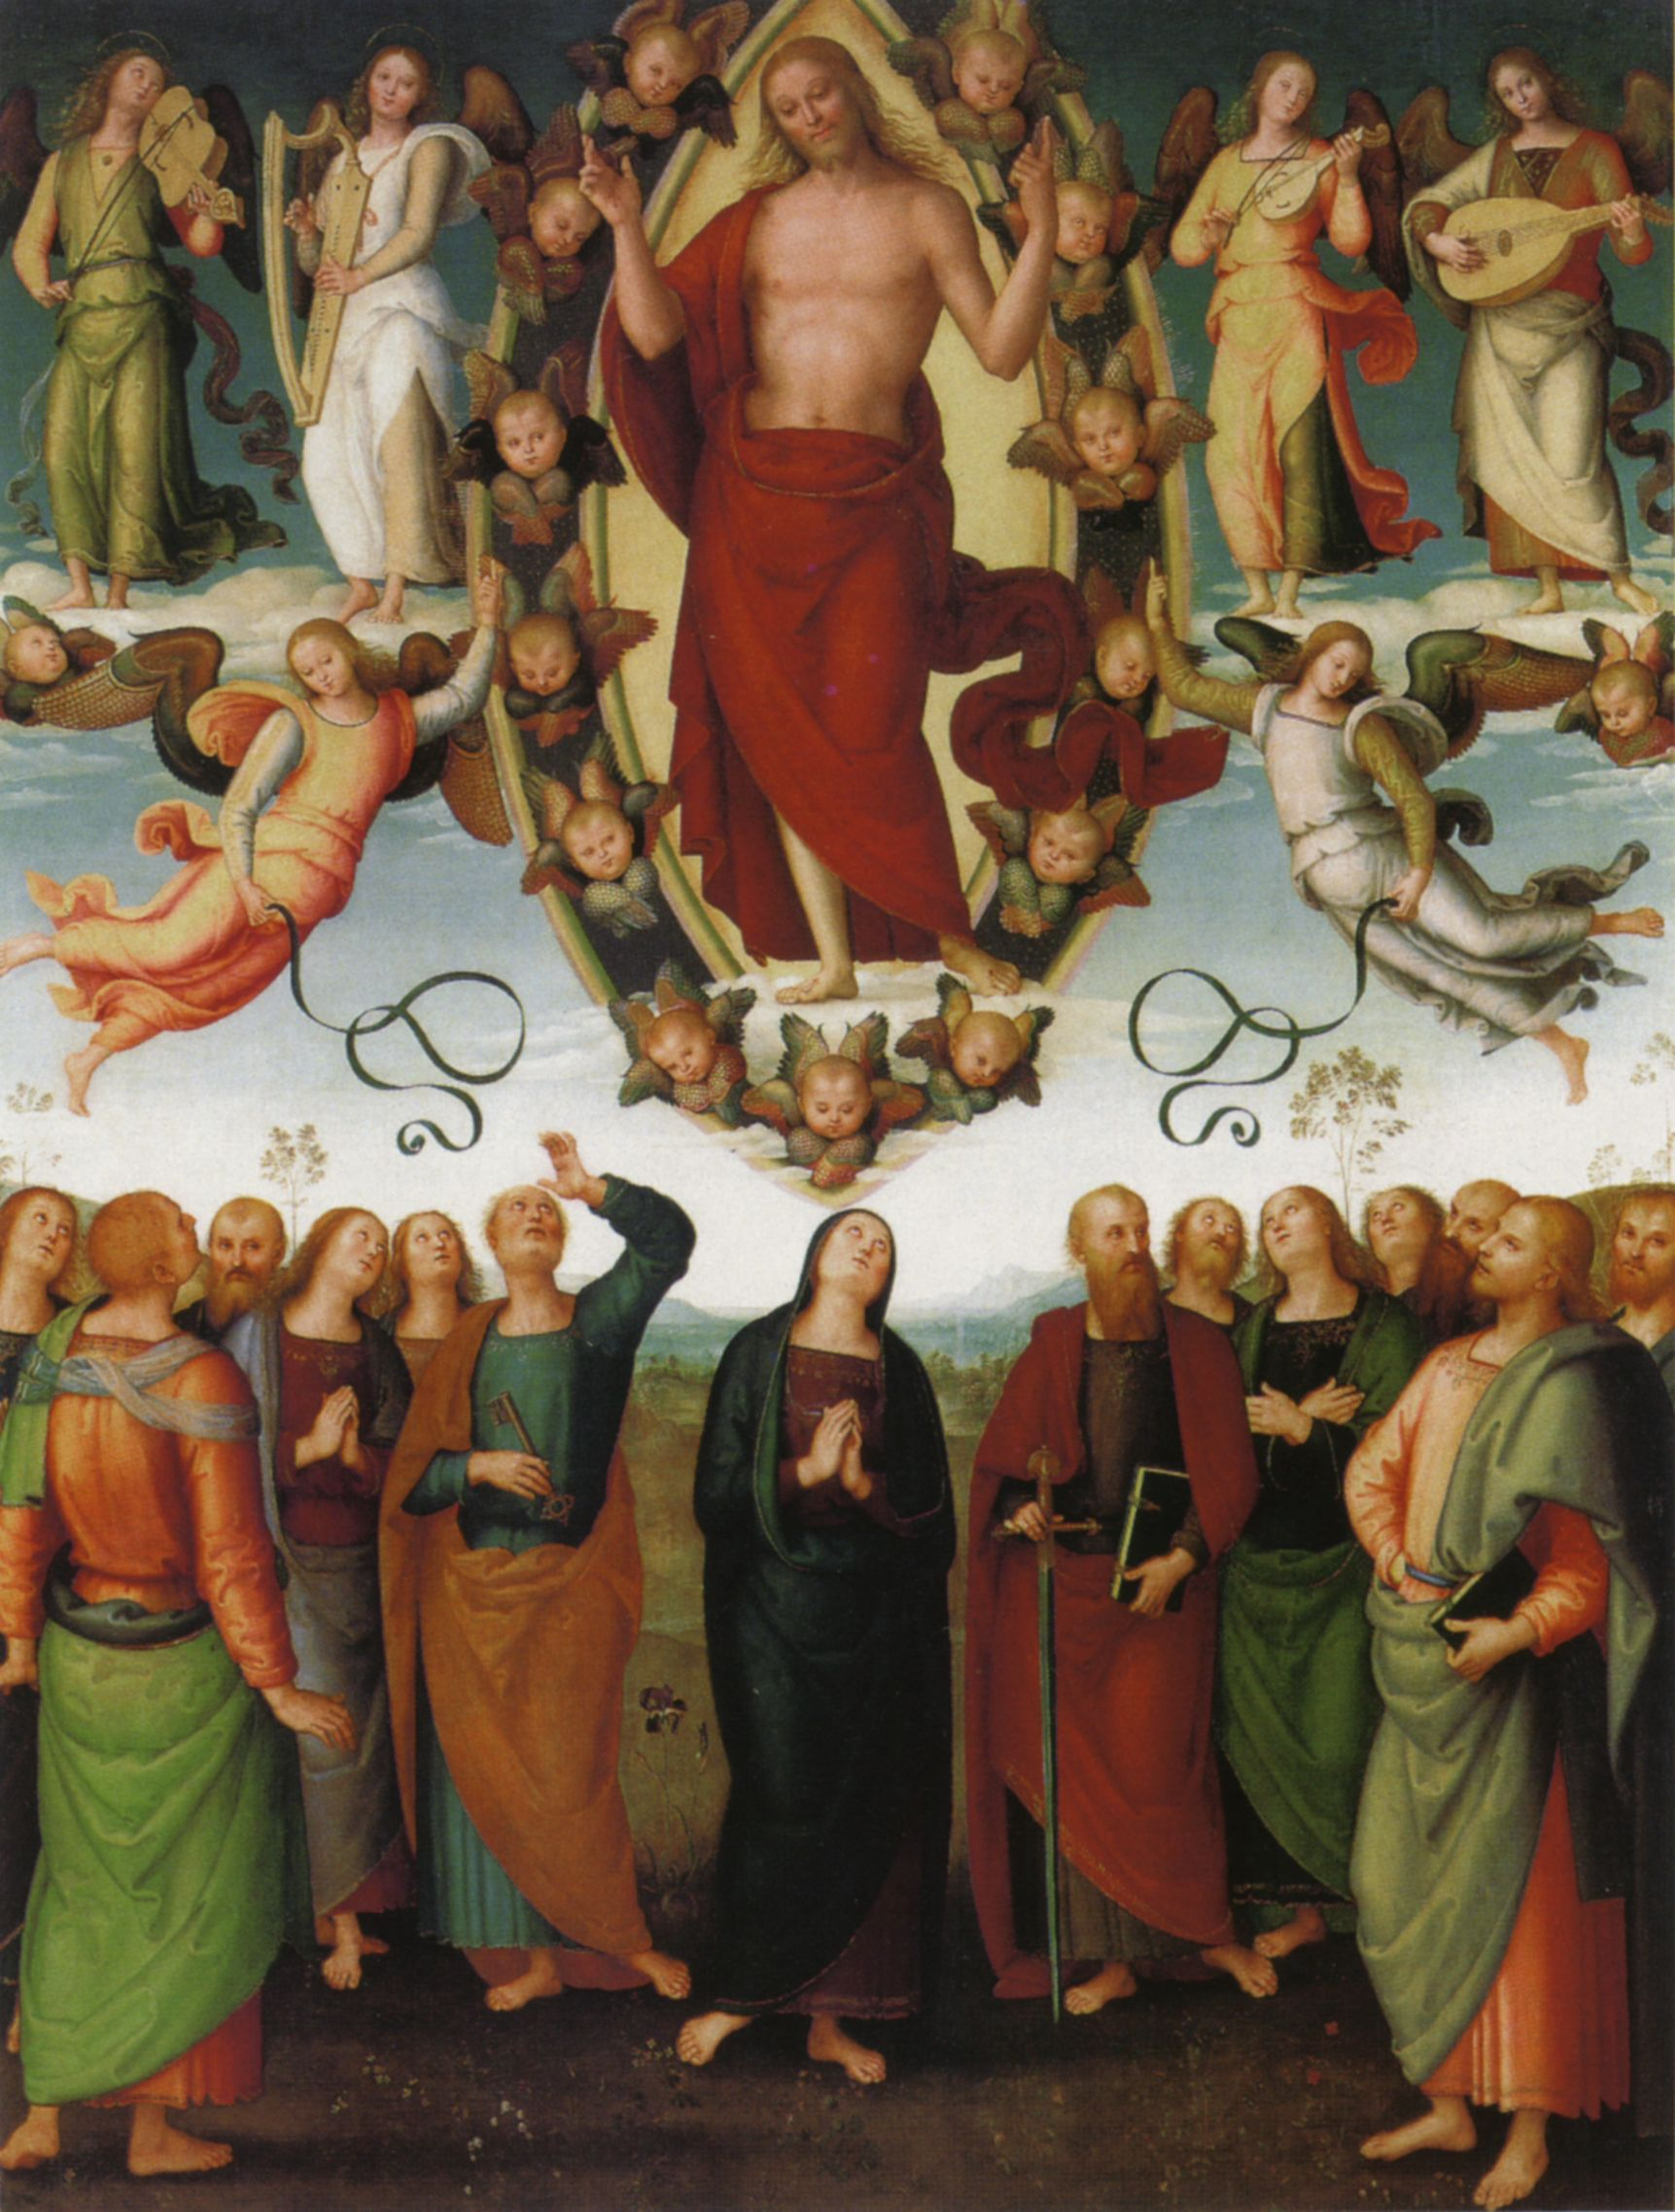 http://uploads5.wikipaintings.org/images/pietro-perugino/the-ascension-of-christ-1510.jpg